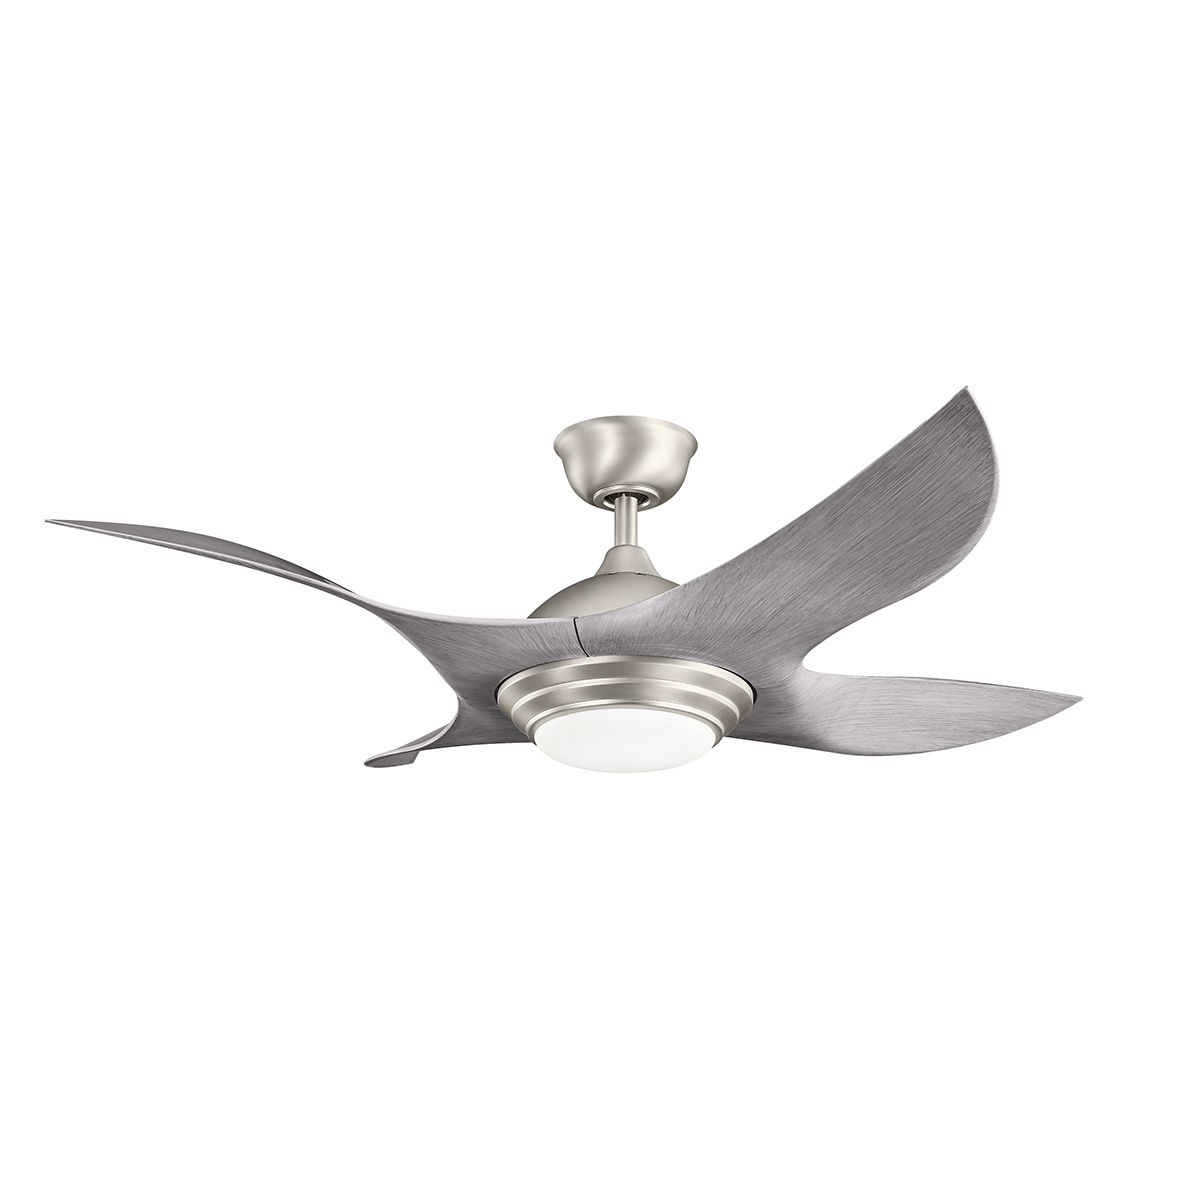 Shuriken Ceiling Fan With Light Kichler At Lightology Ceiling Fan Rustic Ceiling Fan Led Ceiling Fan